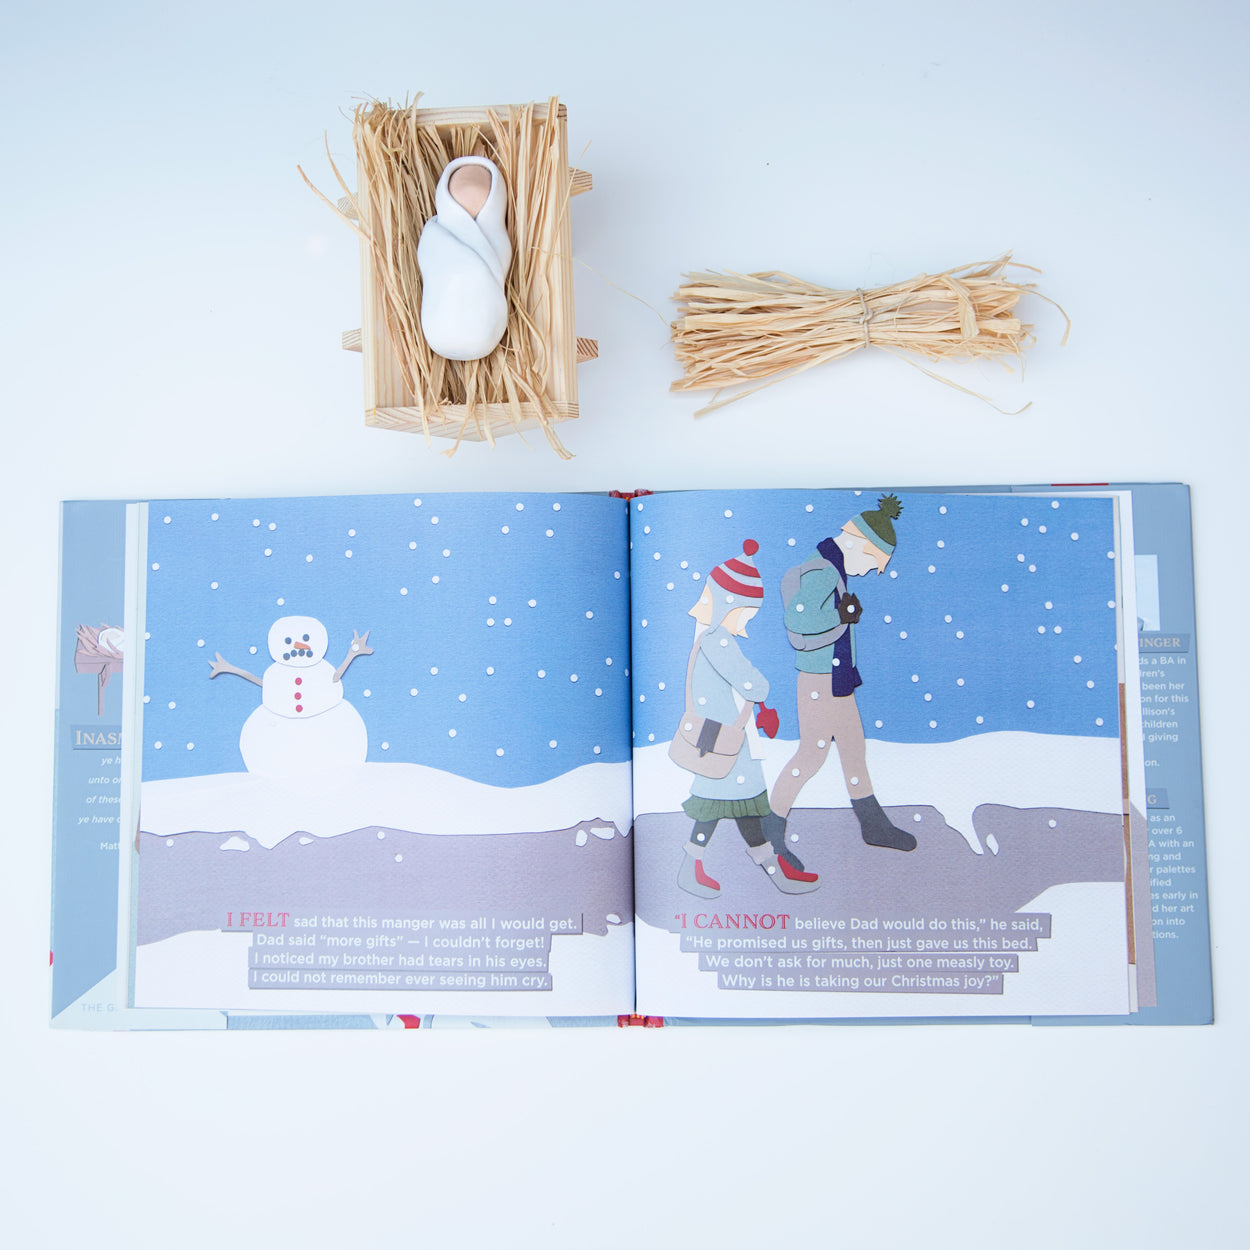 The Giving Manger Christmas Tradition *limited stock remaining*